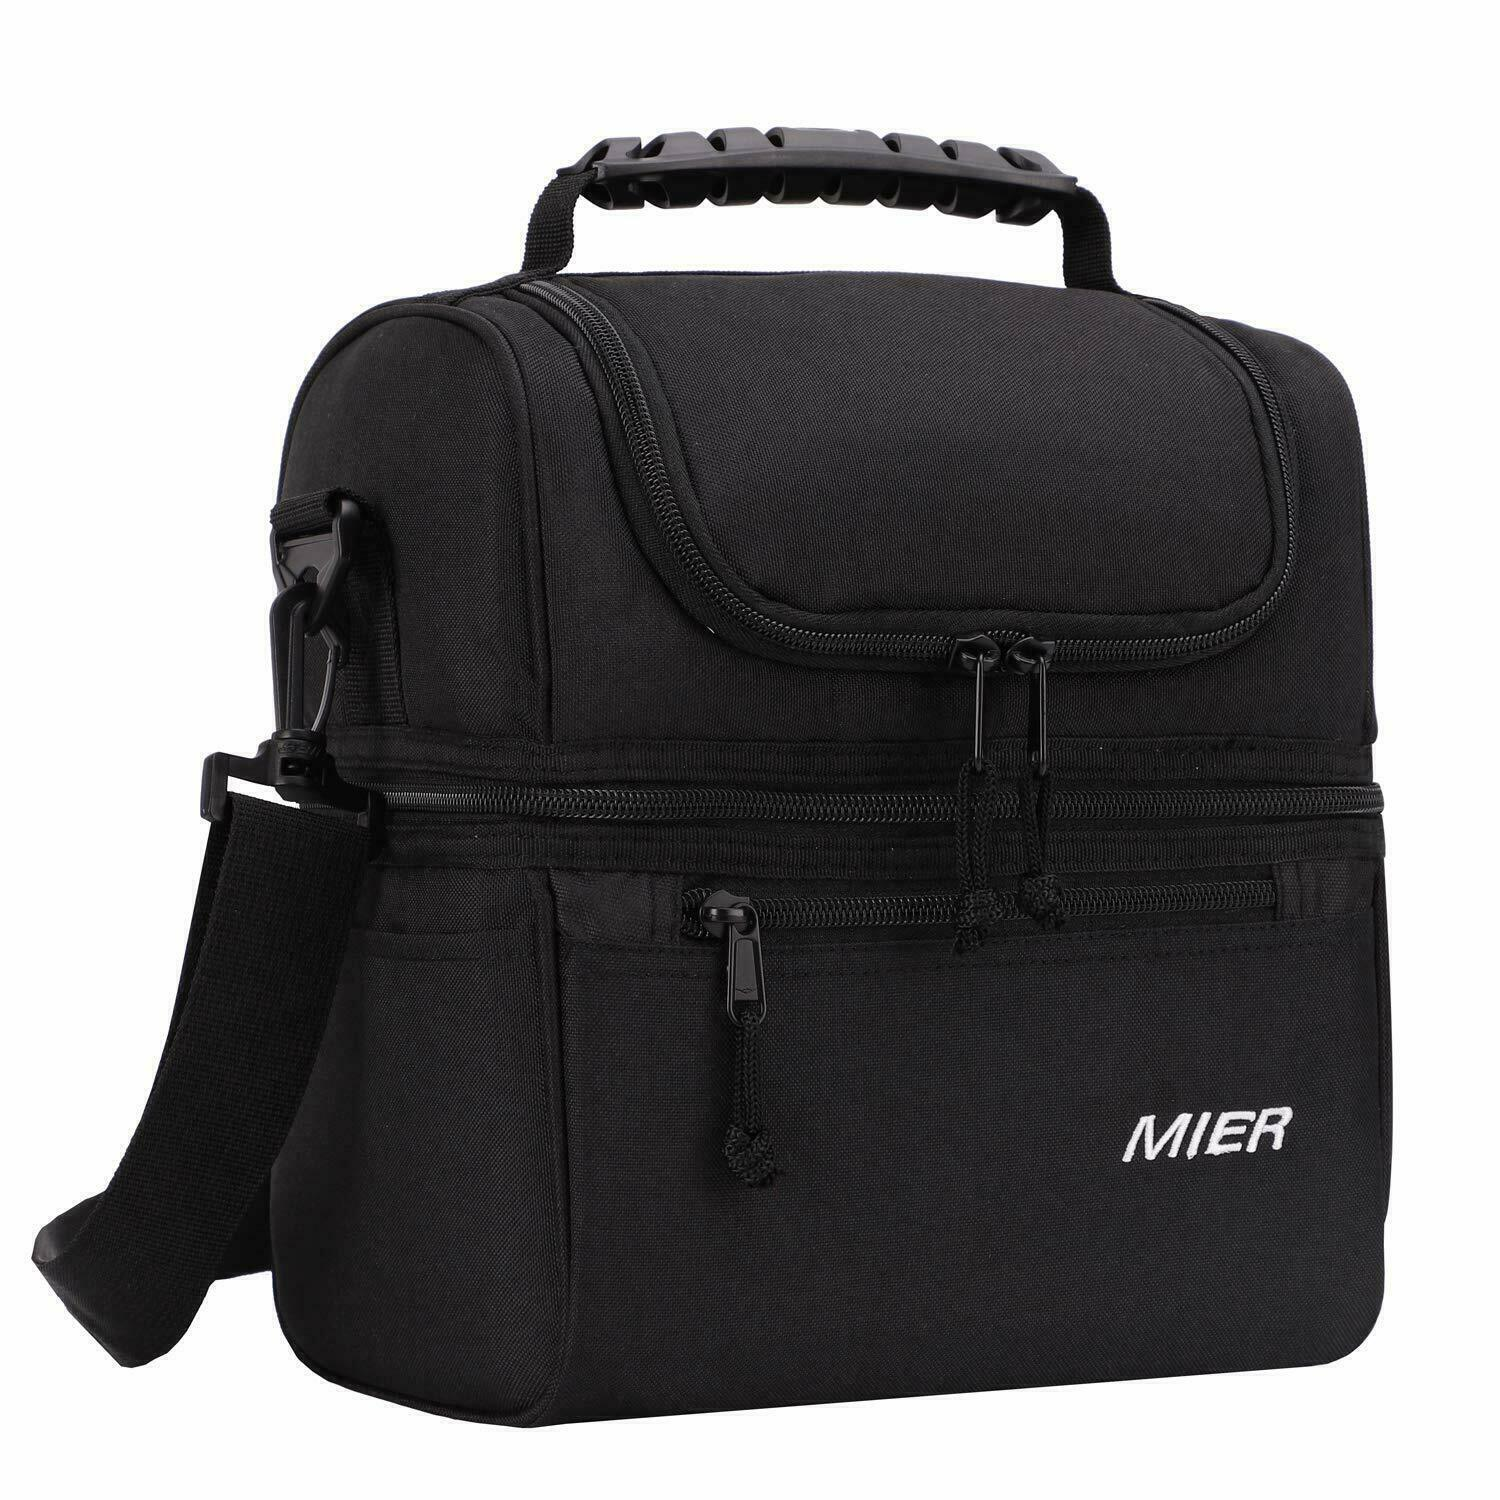 MIER 2 Compartment Lunch Bag for Men Women Leakproof Insulat